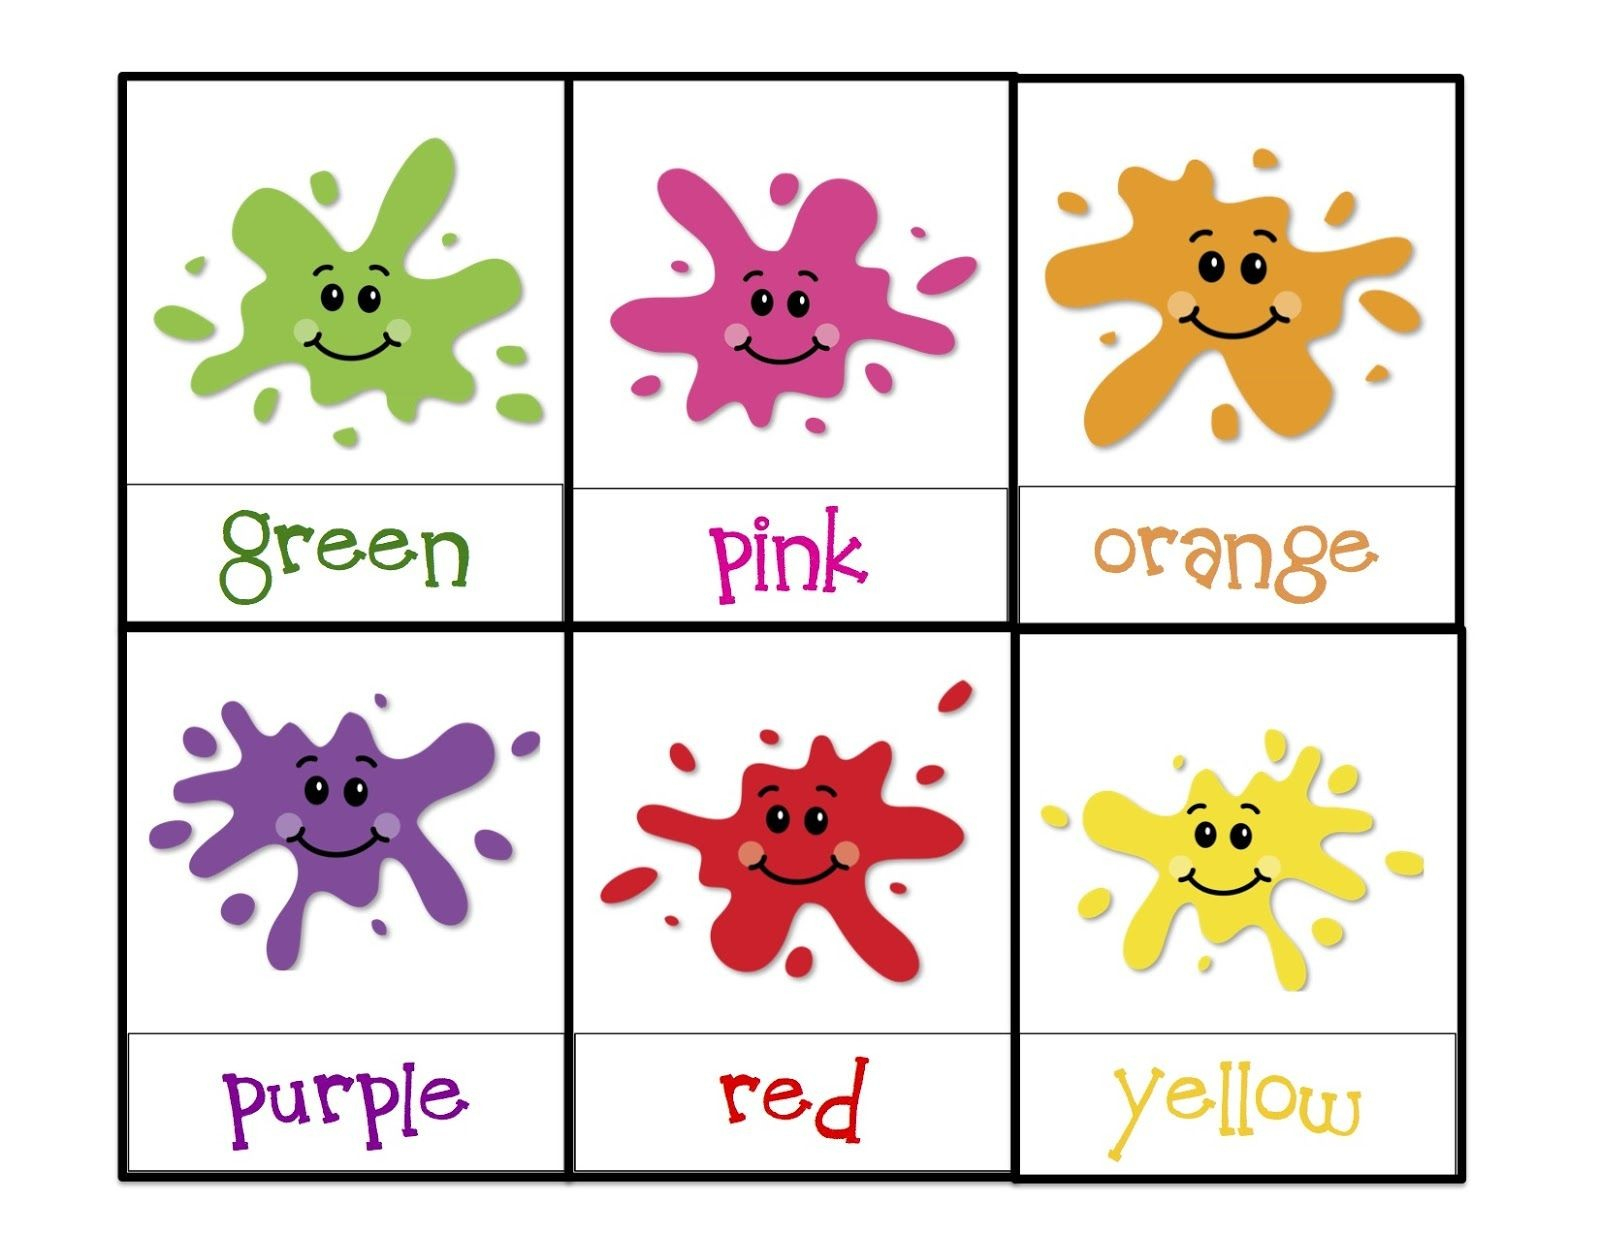 Printable Color Flashcards For Toddlers - Http://cheval-Musique - Free Printable Colour Flashcards